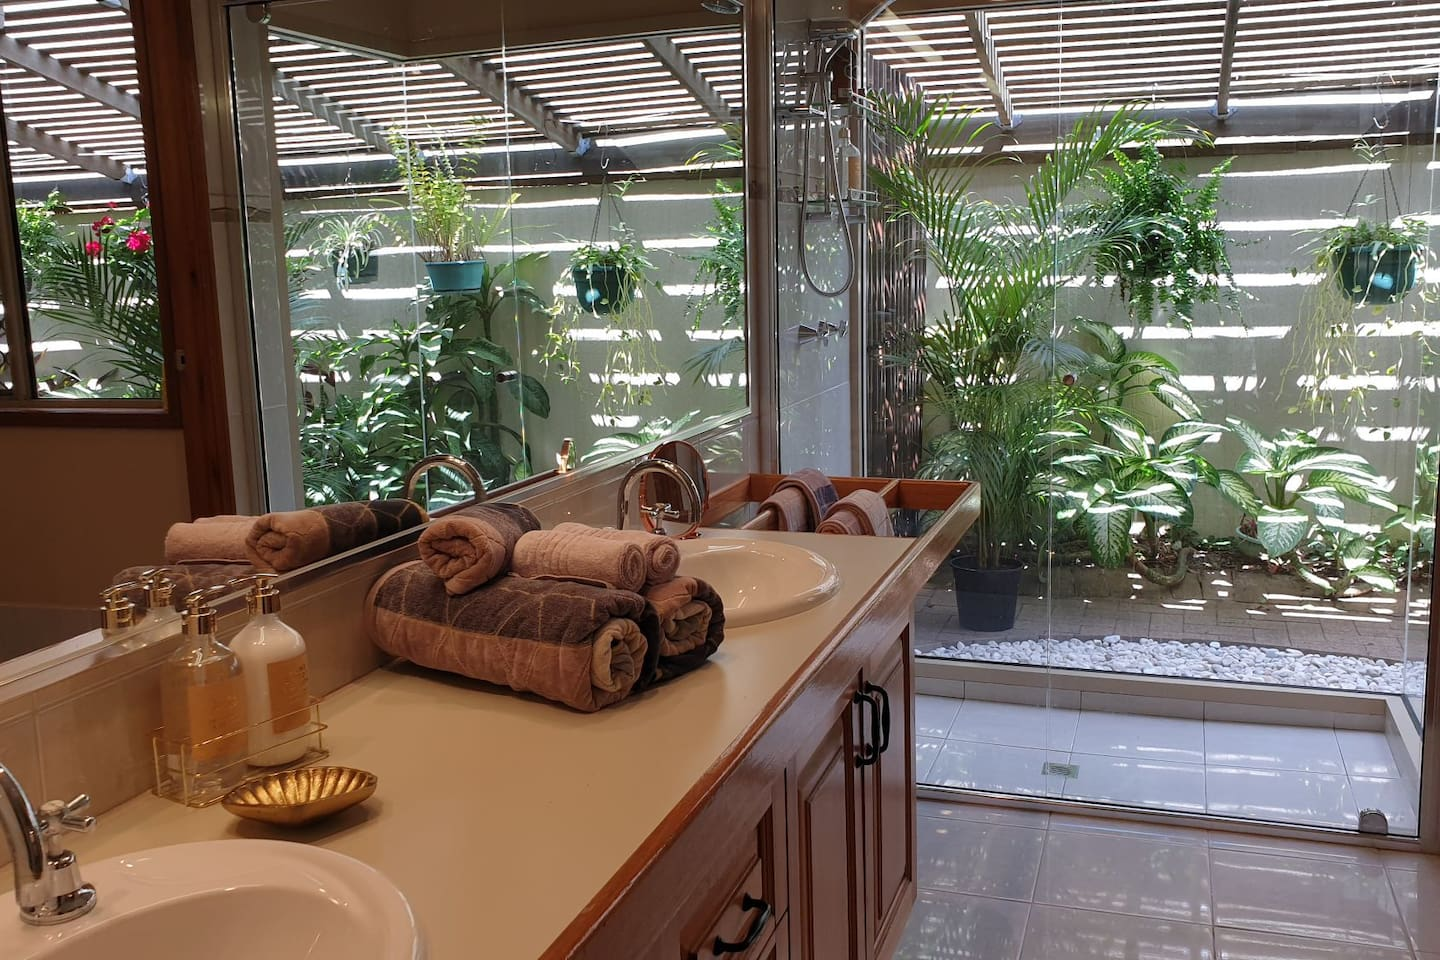 Unique shower in a very private garden setting, with a separate toilet. Towels soap, shampoo and conditioner provided.